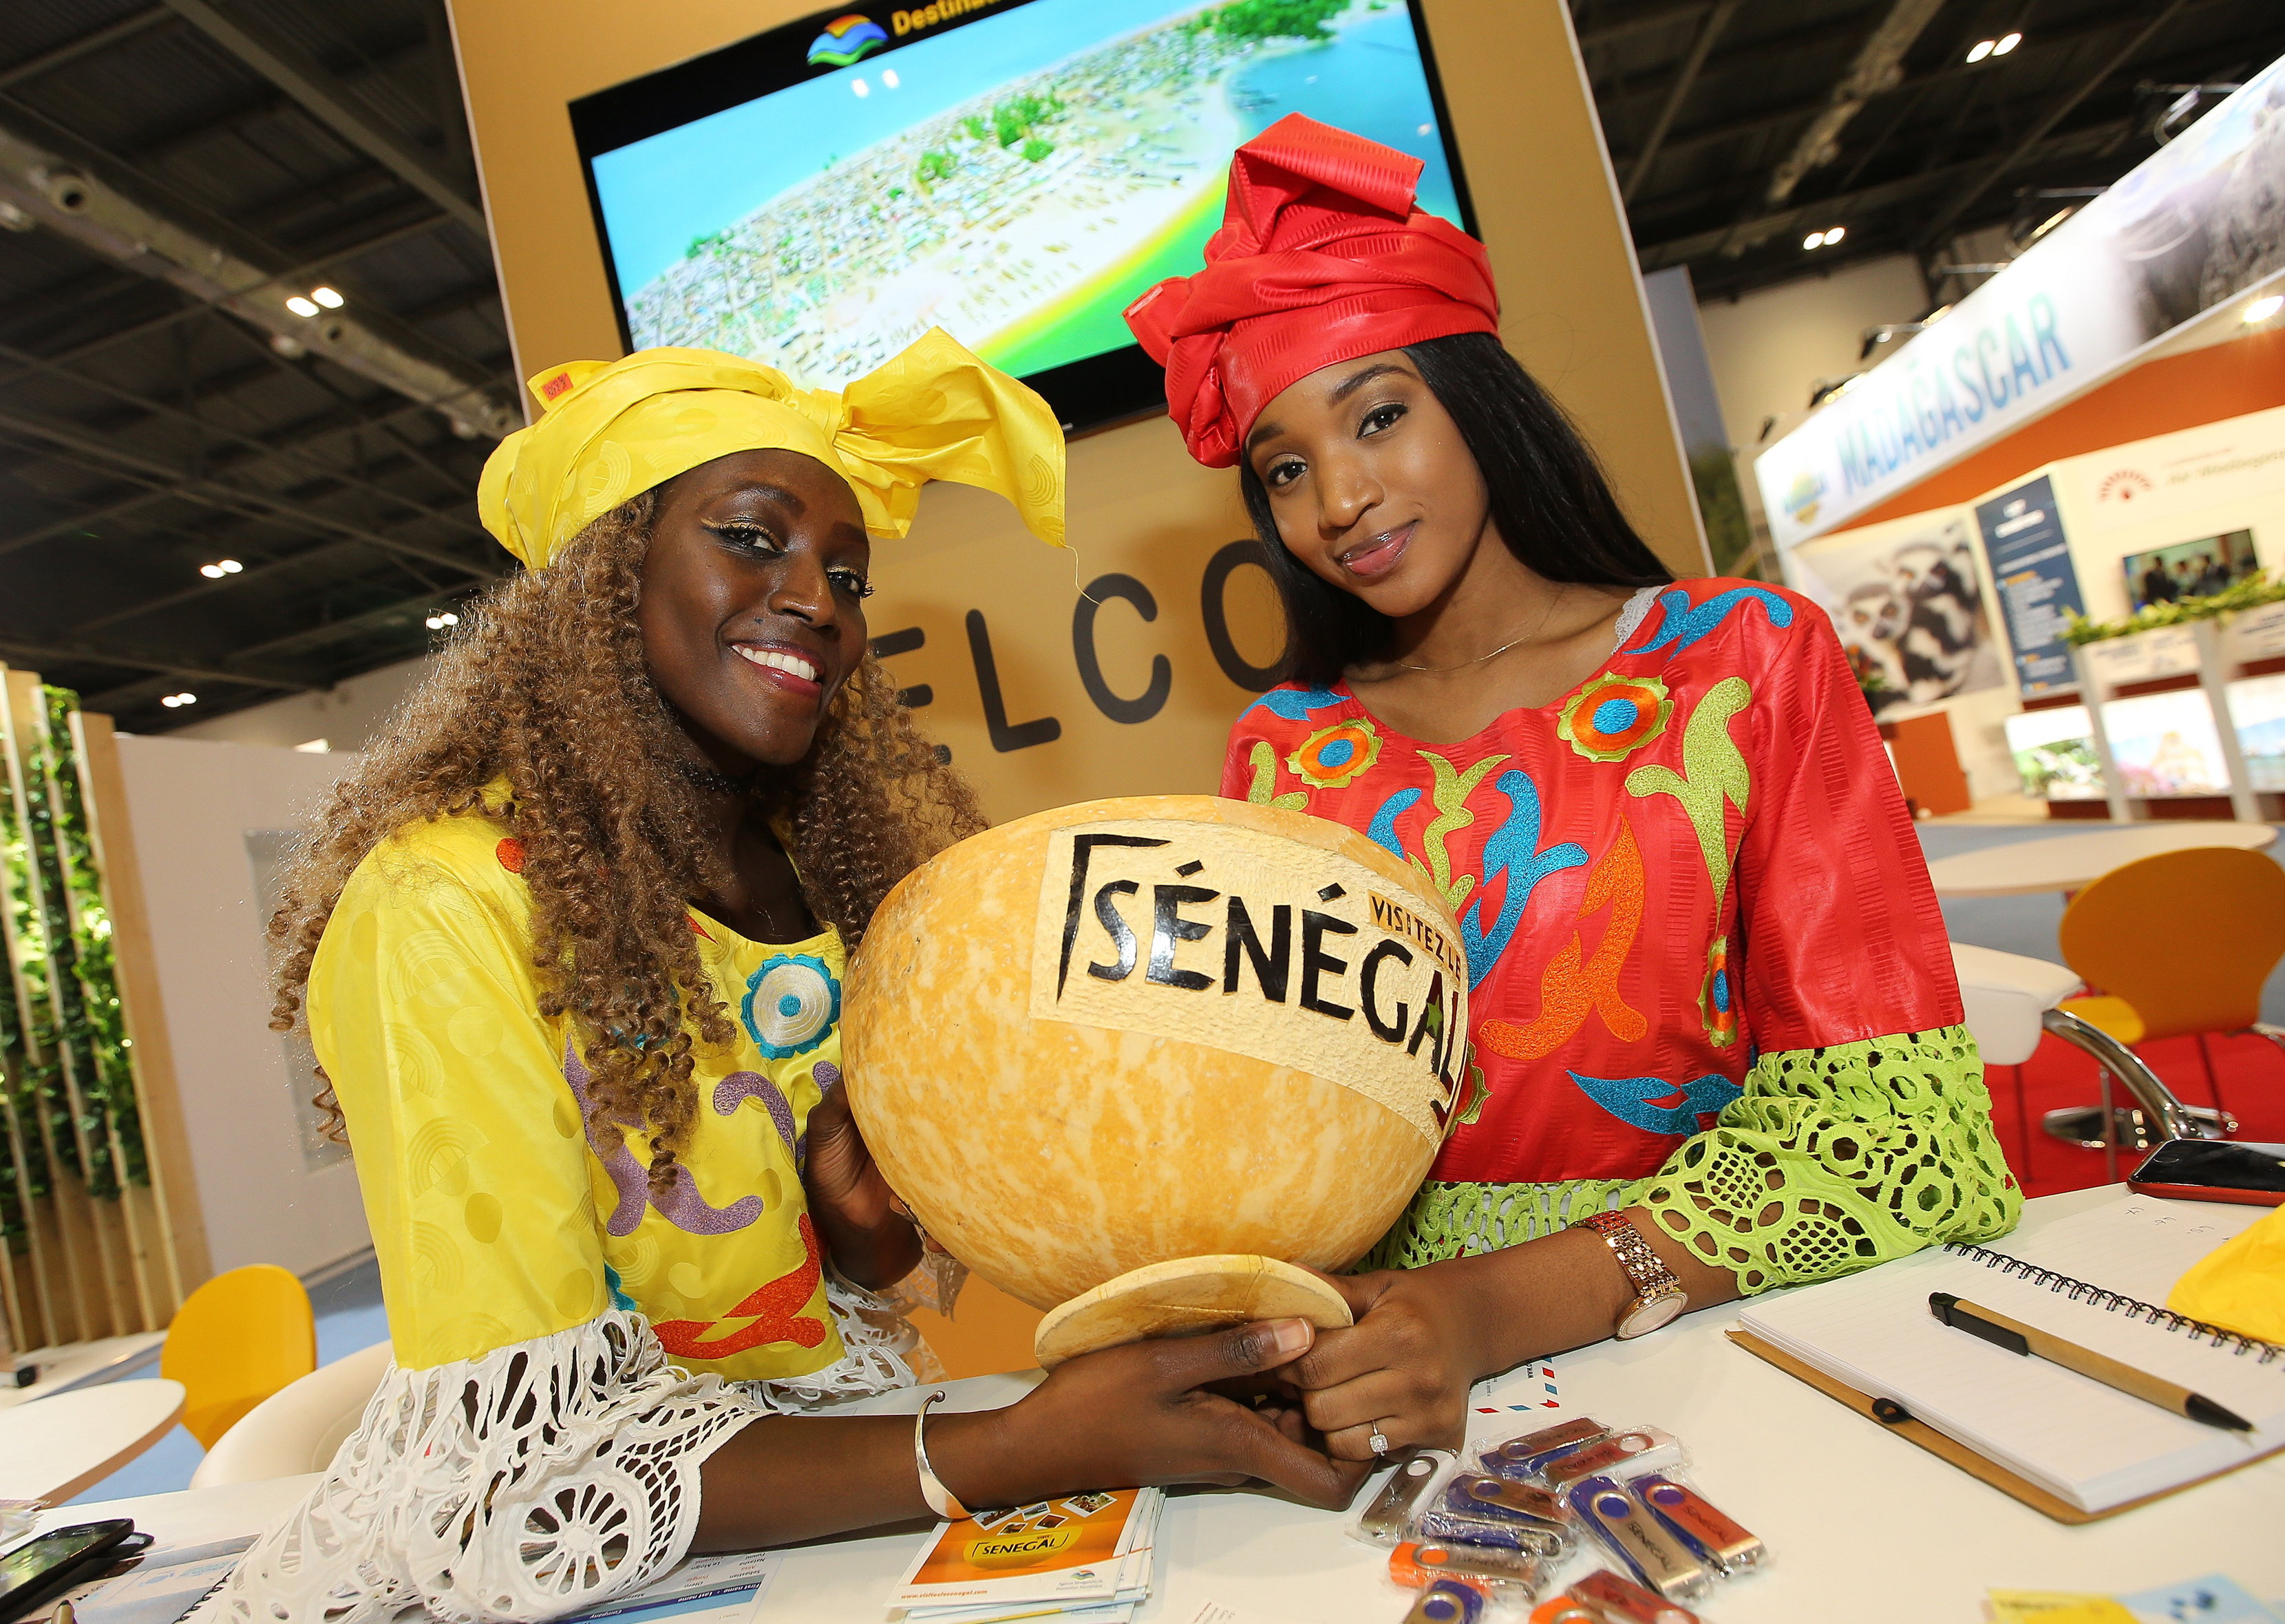 #WTM2018: Africa poised for world's biggest travel show